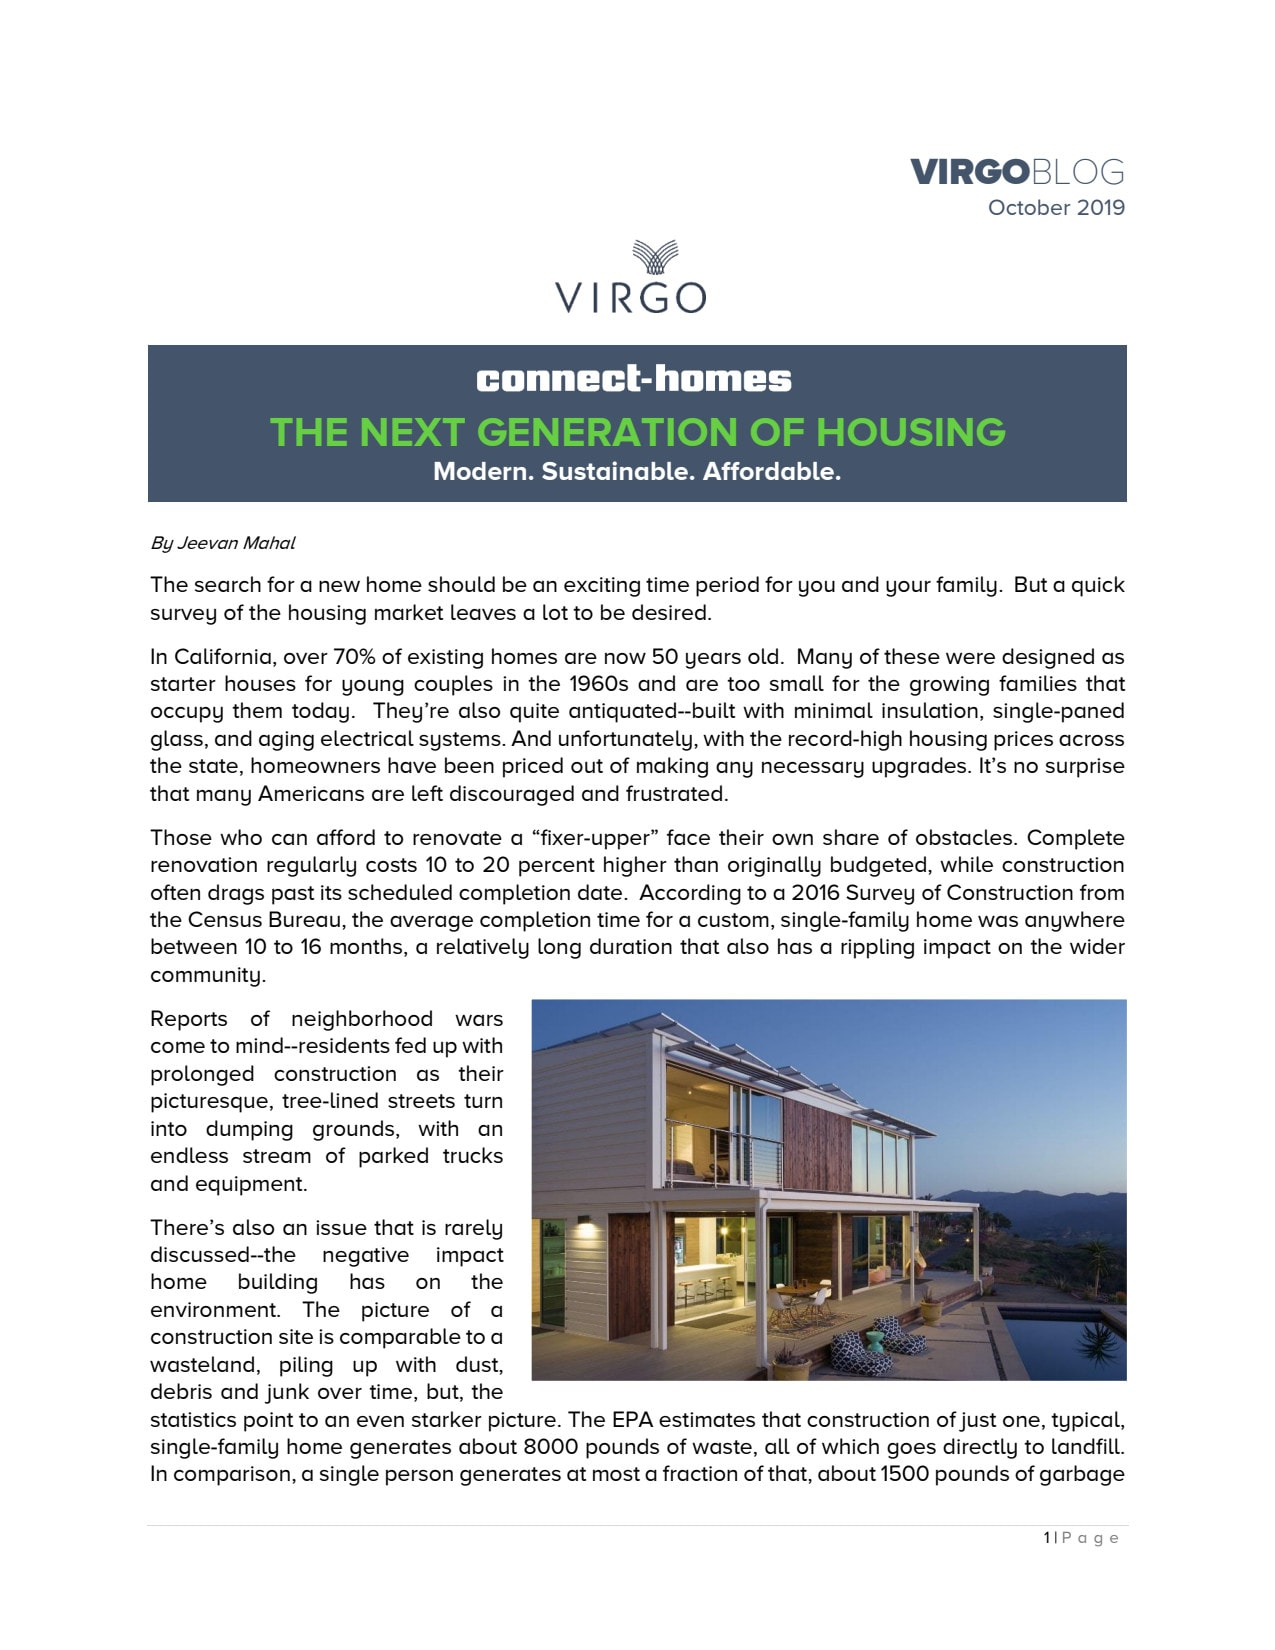 Connect Homes Editorial